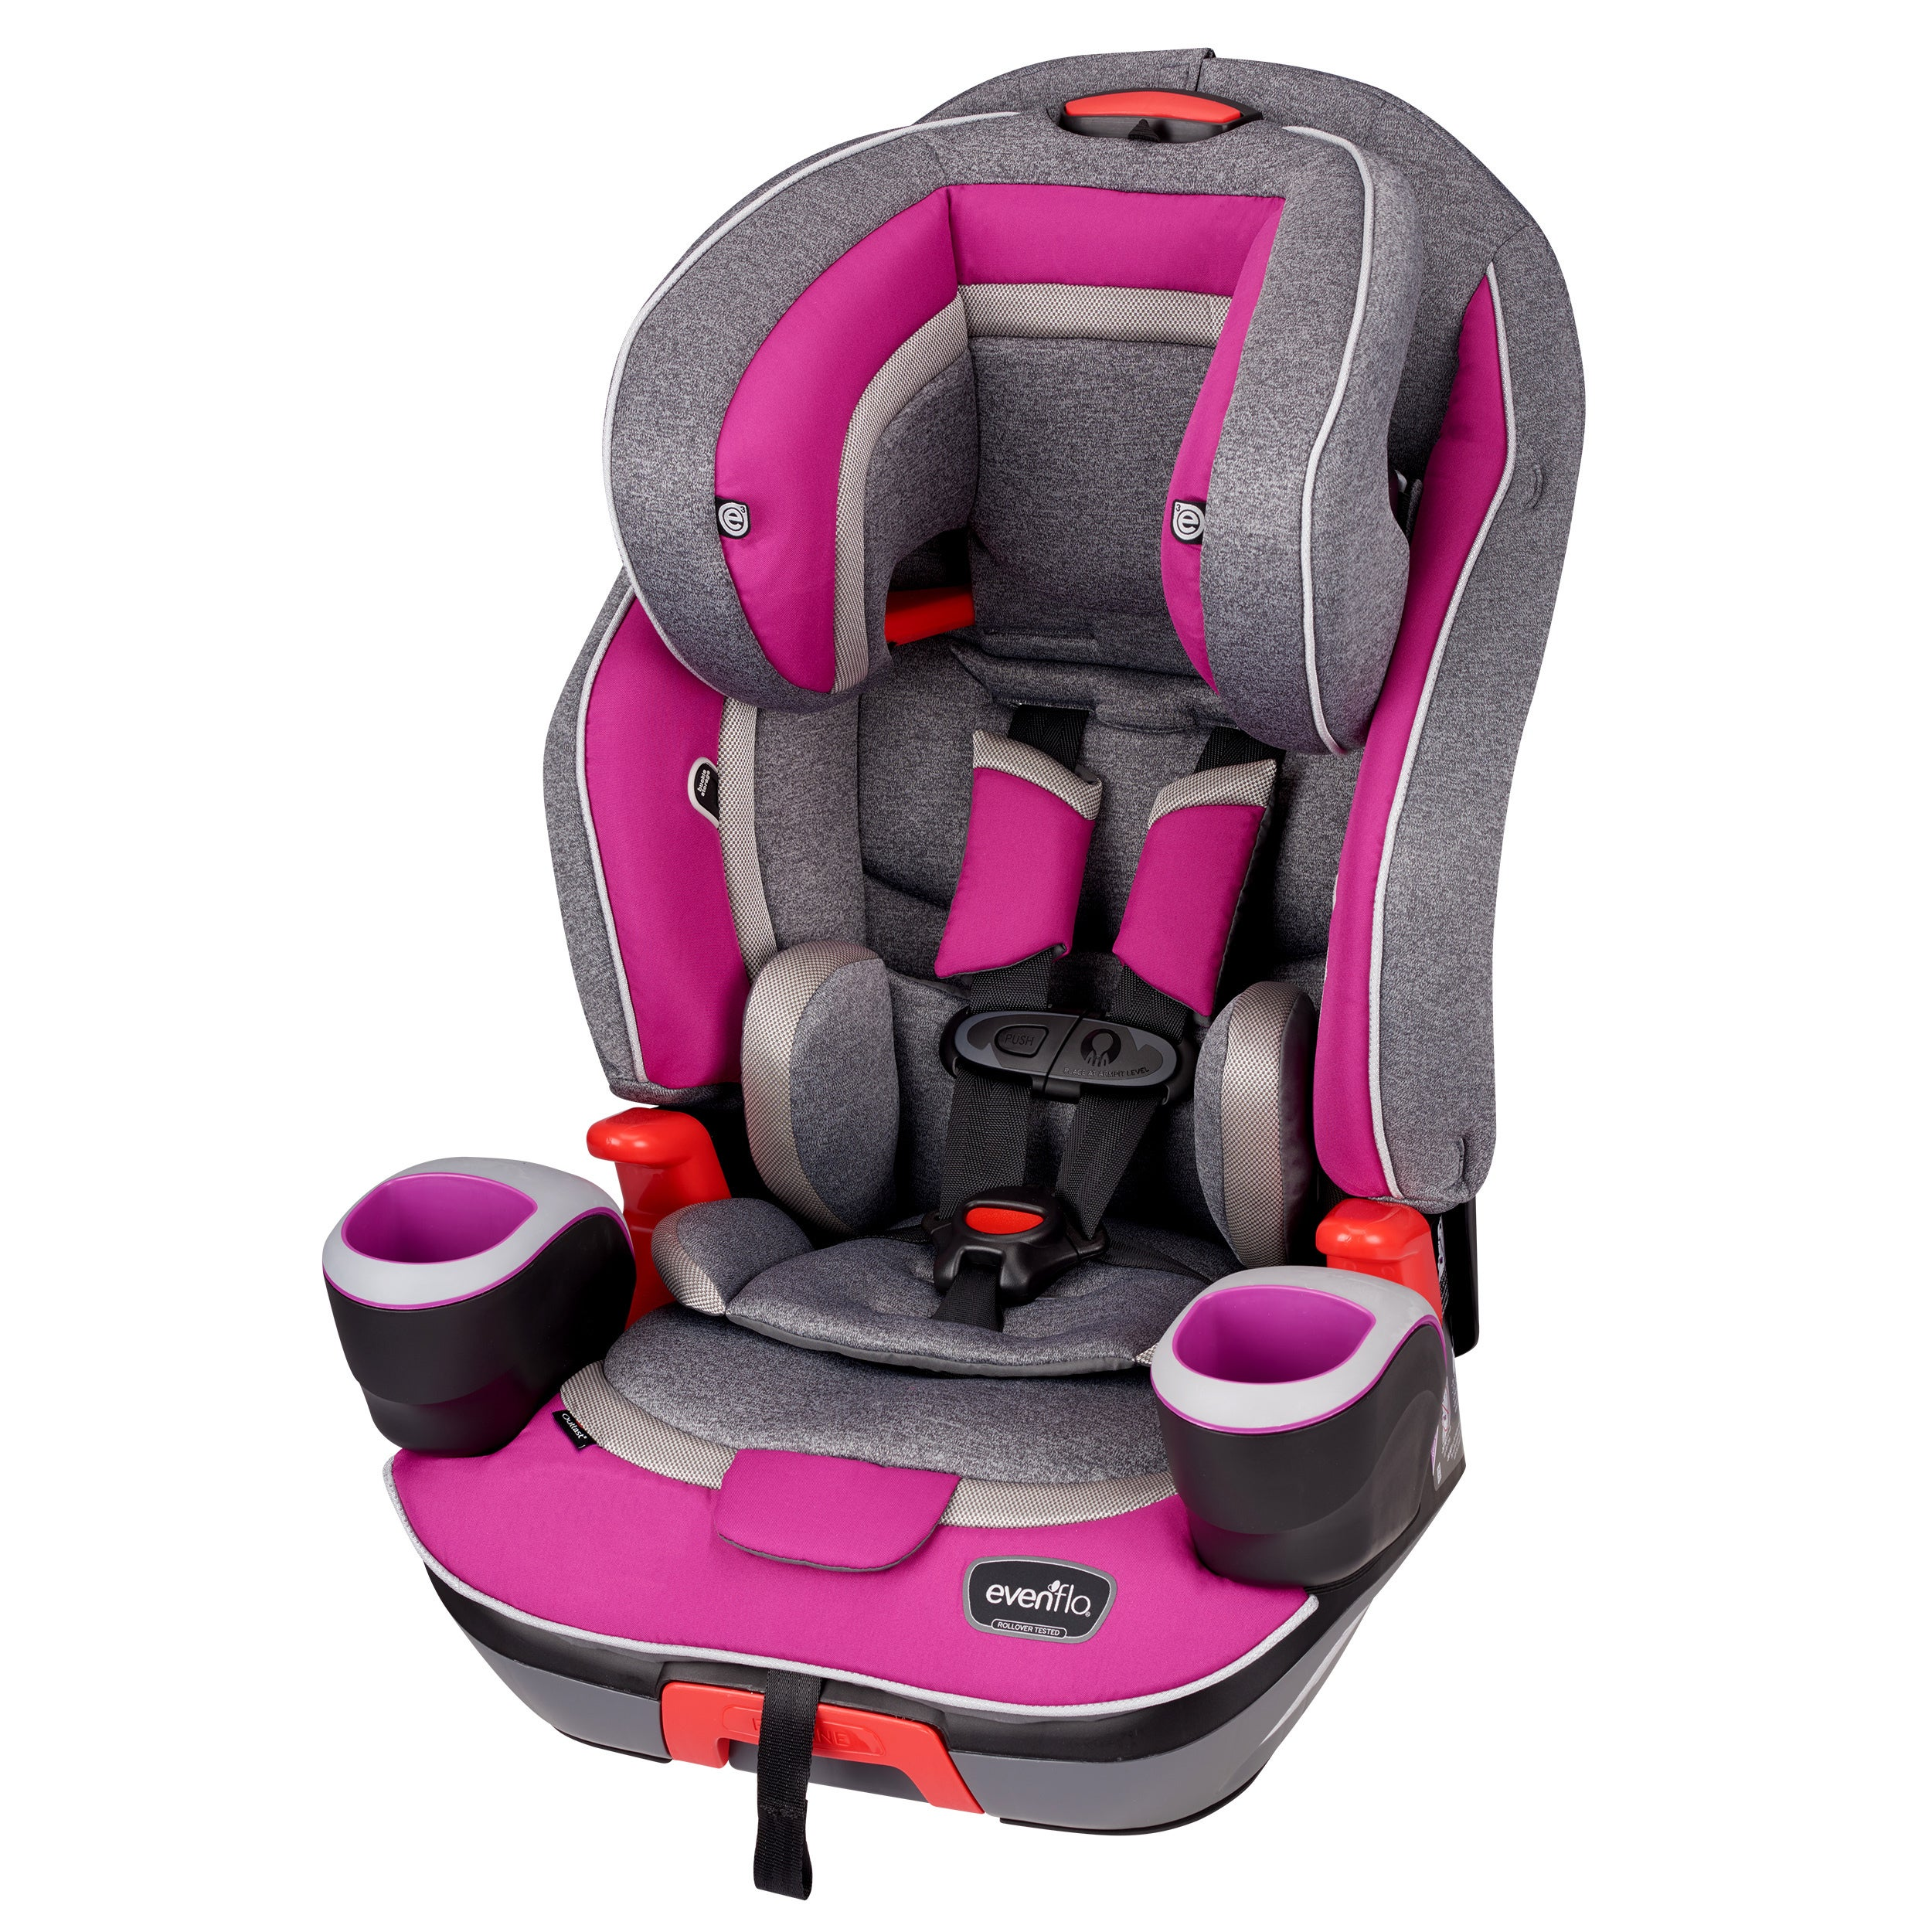 Shop Evenflo Platinum Evolve 3 In 1 Combination Booster Car Seat Tory